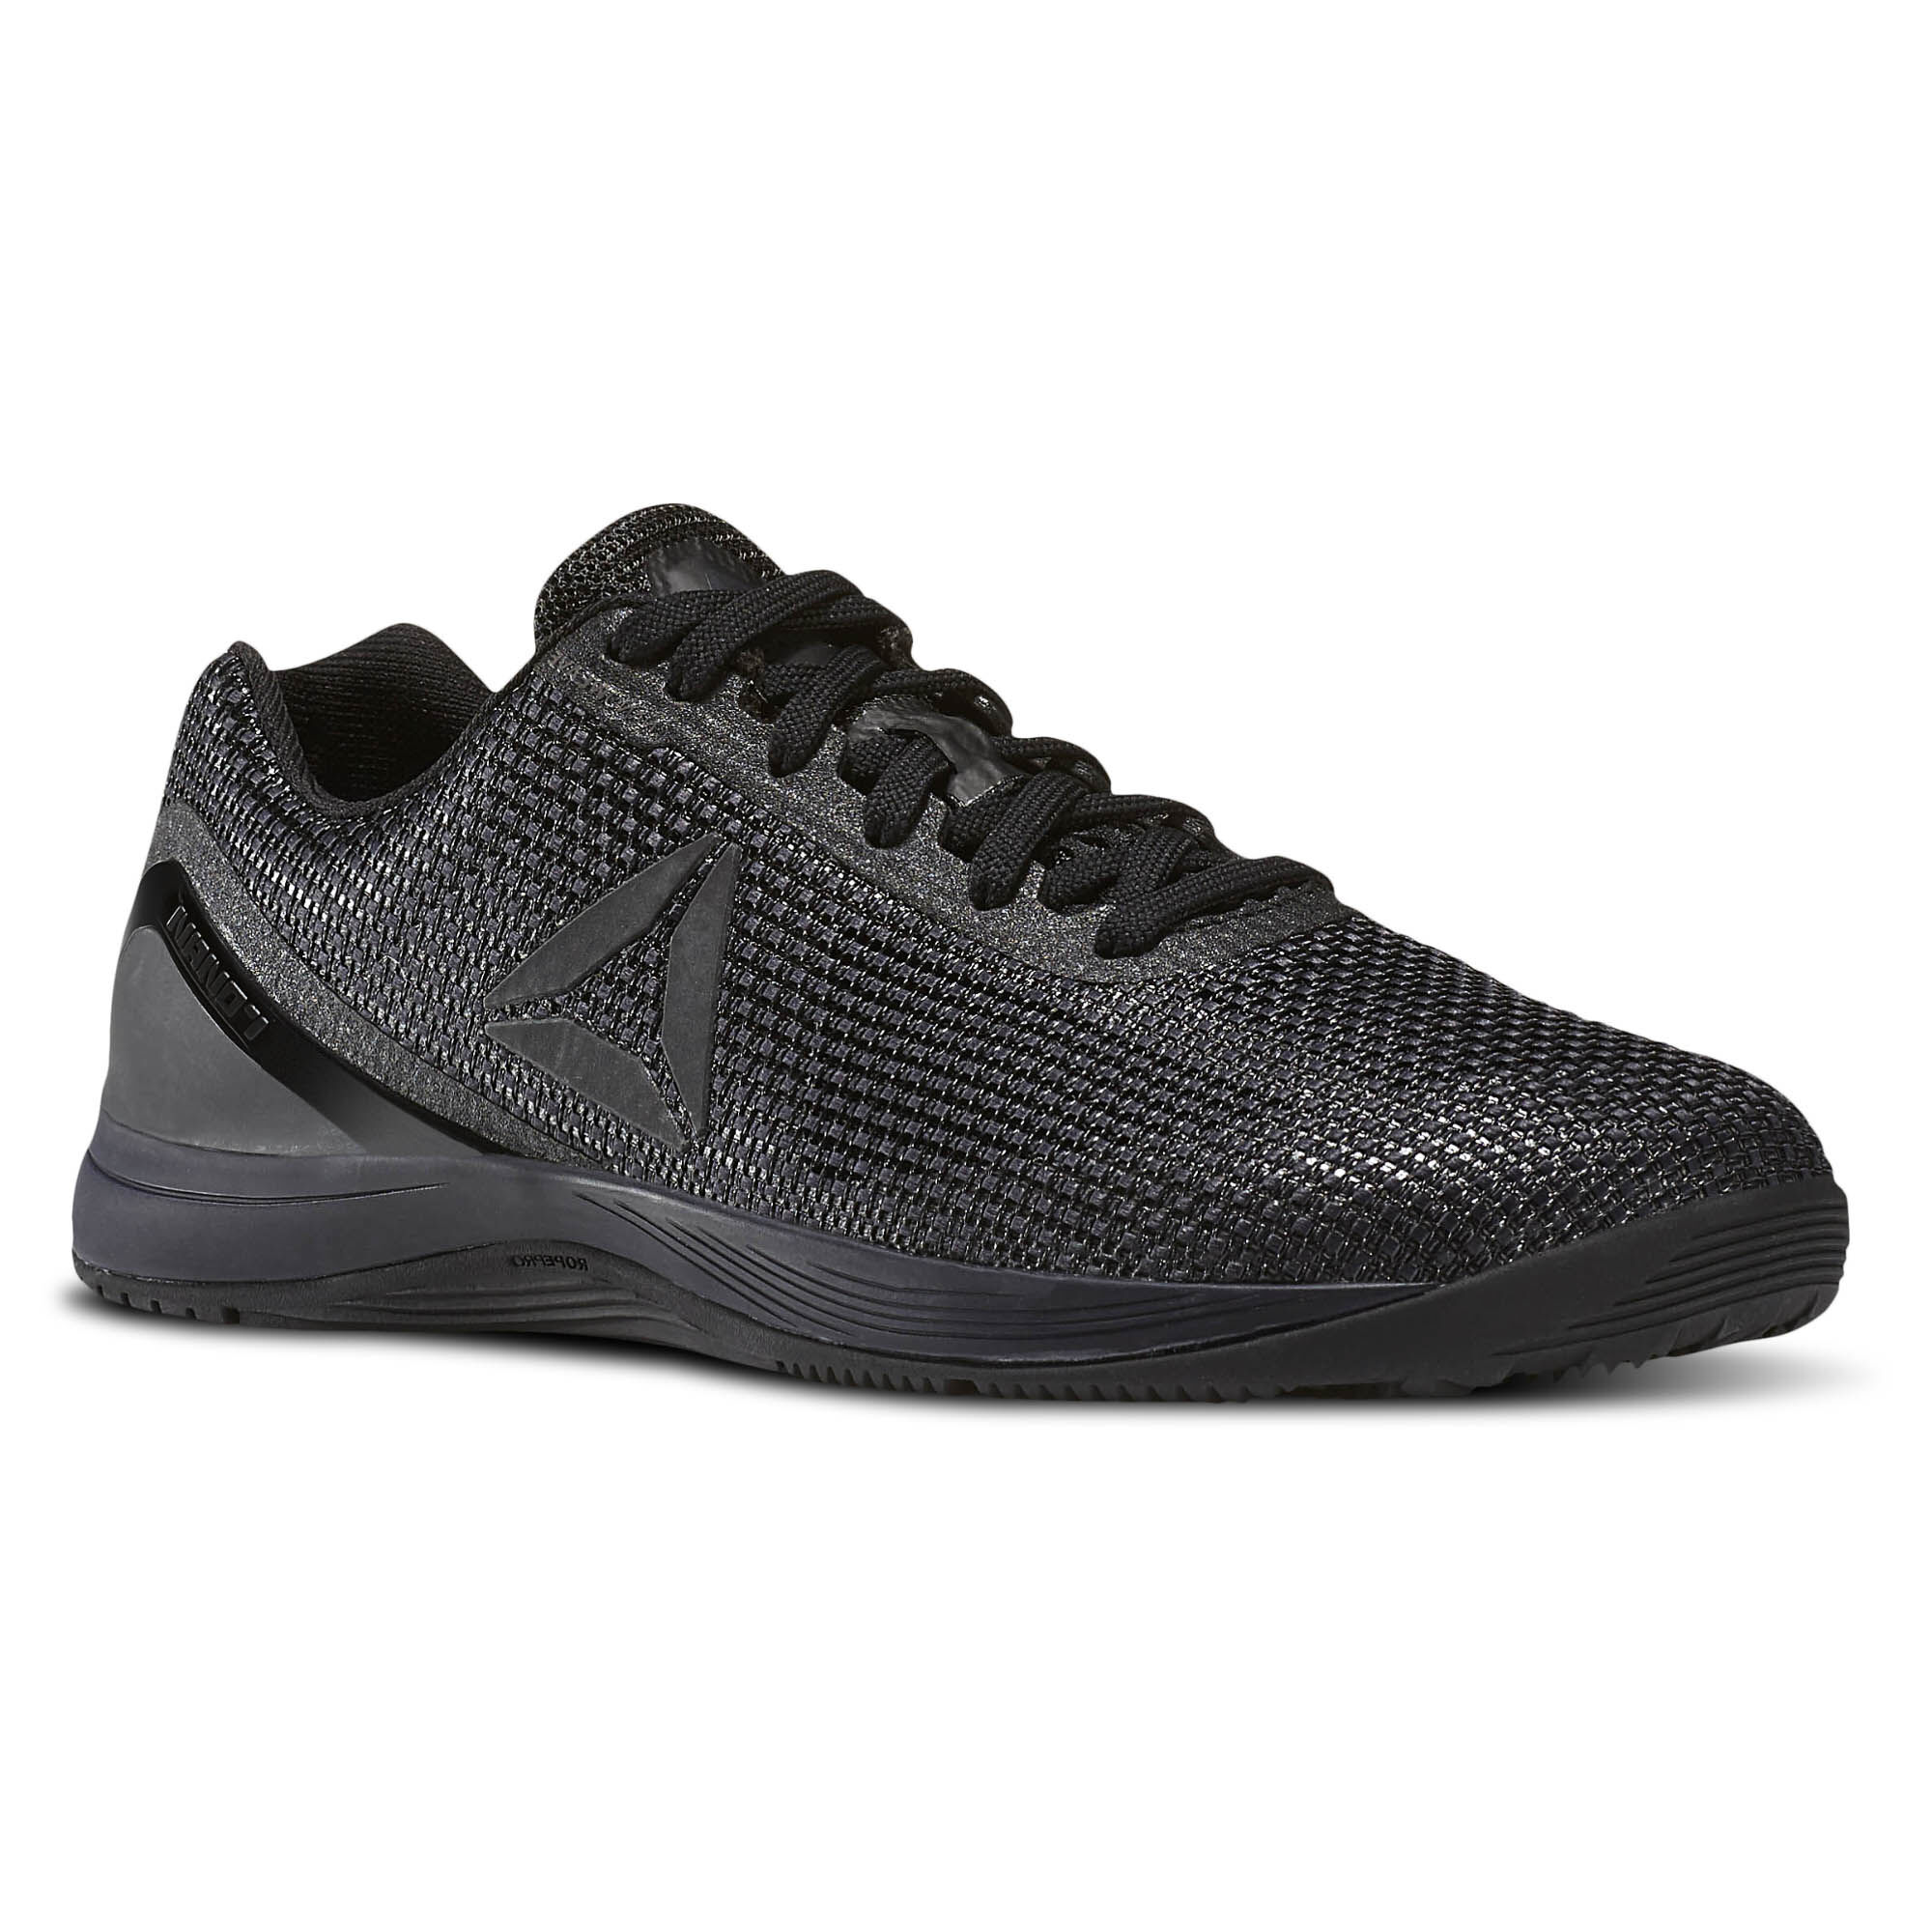 8ffef3aff7d reebok crossfit lifter 3.0 cheap   OFF78% The Largest Catalog Discounts